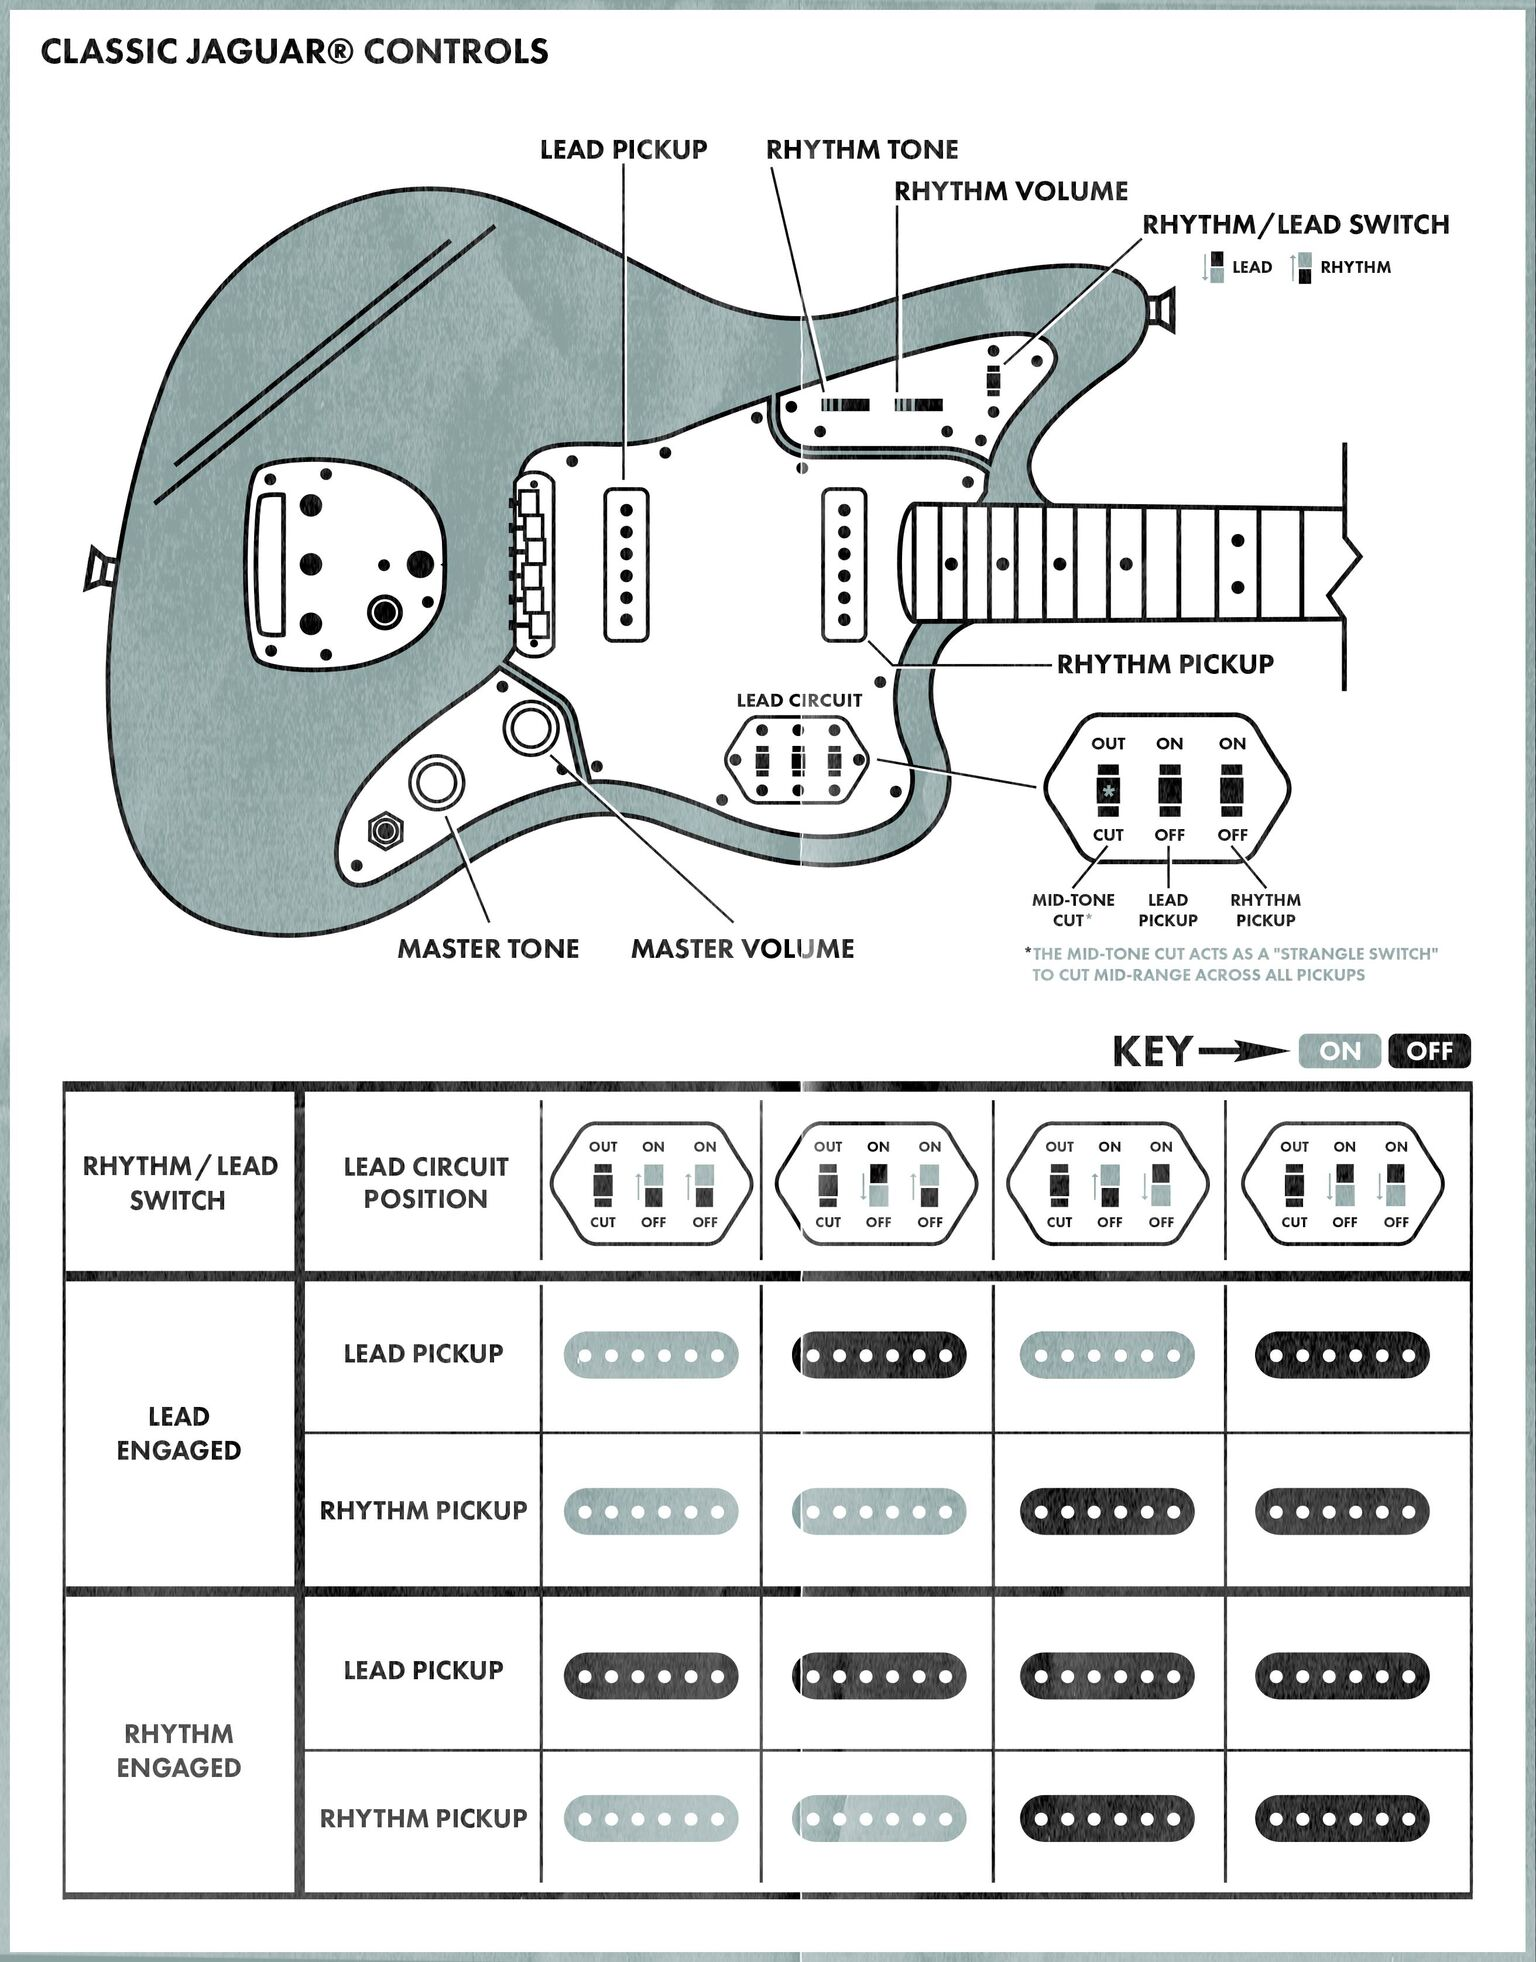 Fender Jaguar Wiring Diagram Reinvent Your Squier Humbucker Controls Explained Rh Com Kurt Cobain